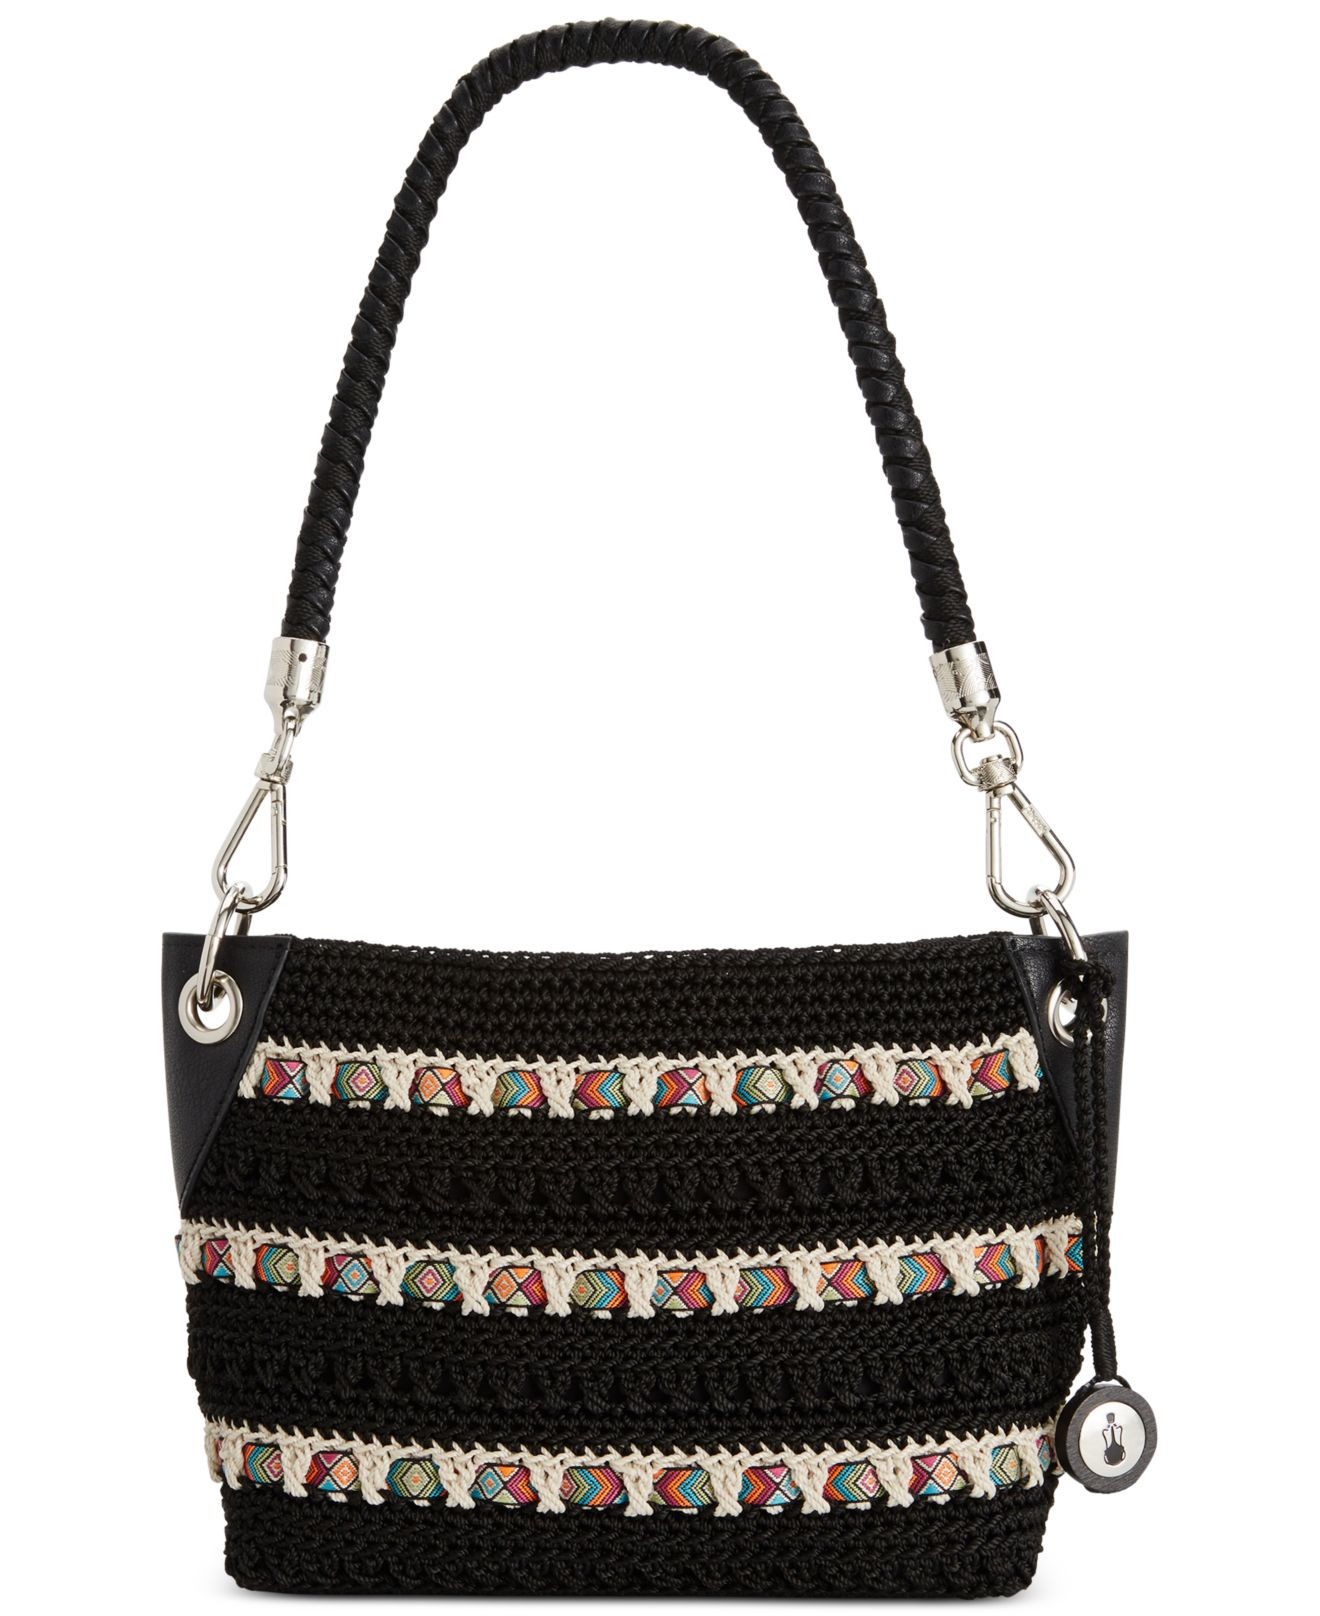 The Sak Bags Crochet : The sak Portola Crochet Hobo in Black Lyst